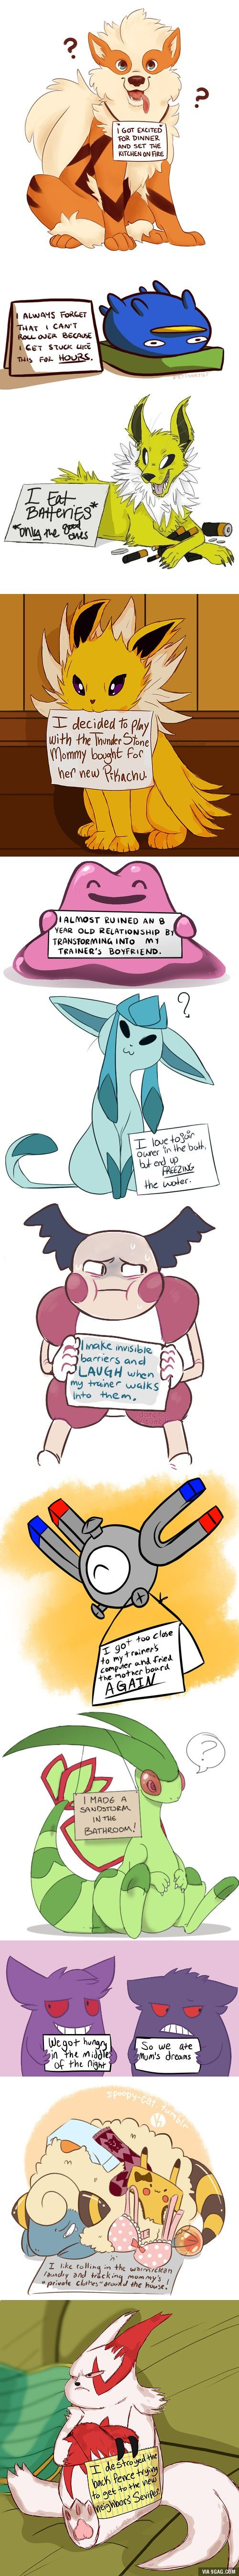 Pokemon have problems too.Their not robots.LOLOLOLOLOLOLOLOLOLOLOLOLOLOLOLOLOLOLOLOLOLOL.LIKE AND FOLLOW ME IF YOU THINK THIS IS FUNNY.